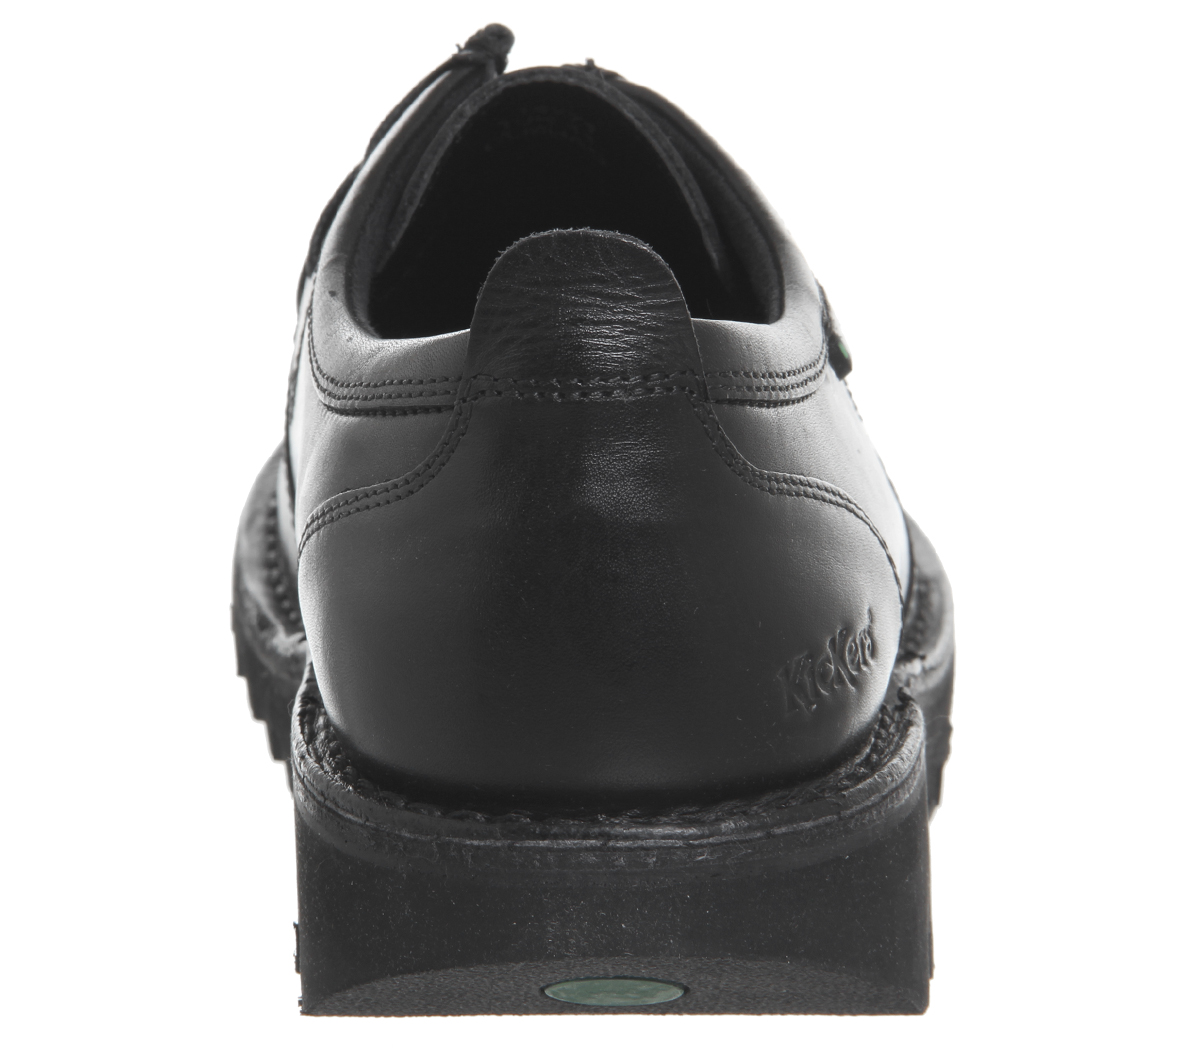 Schuhes Uomo Kickers Kick Wallbi Schuhes  BLACK LEATHER Casual Schuhes b7f7ee